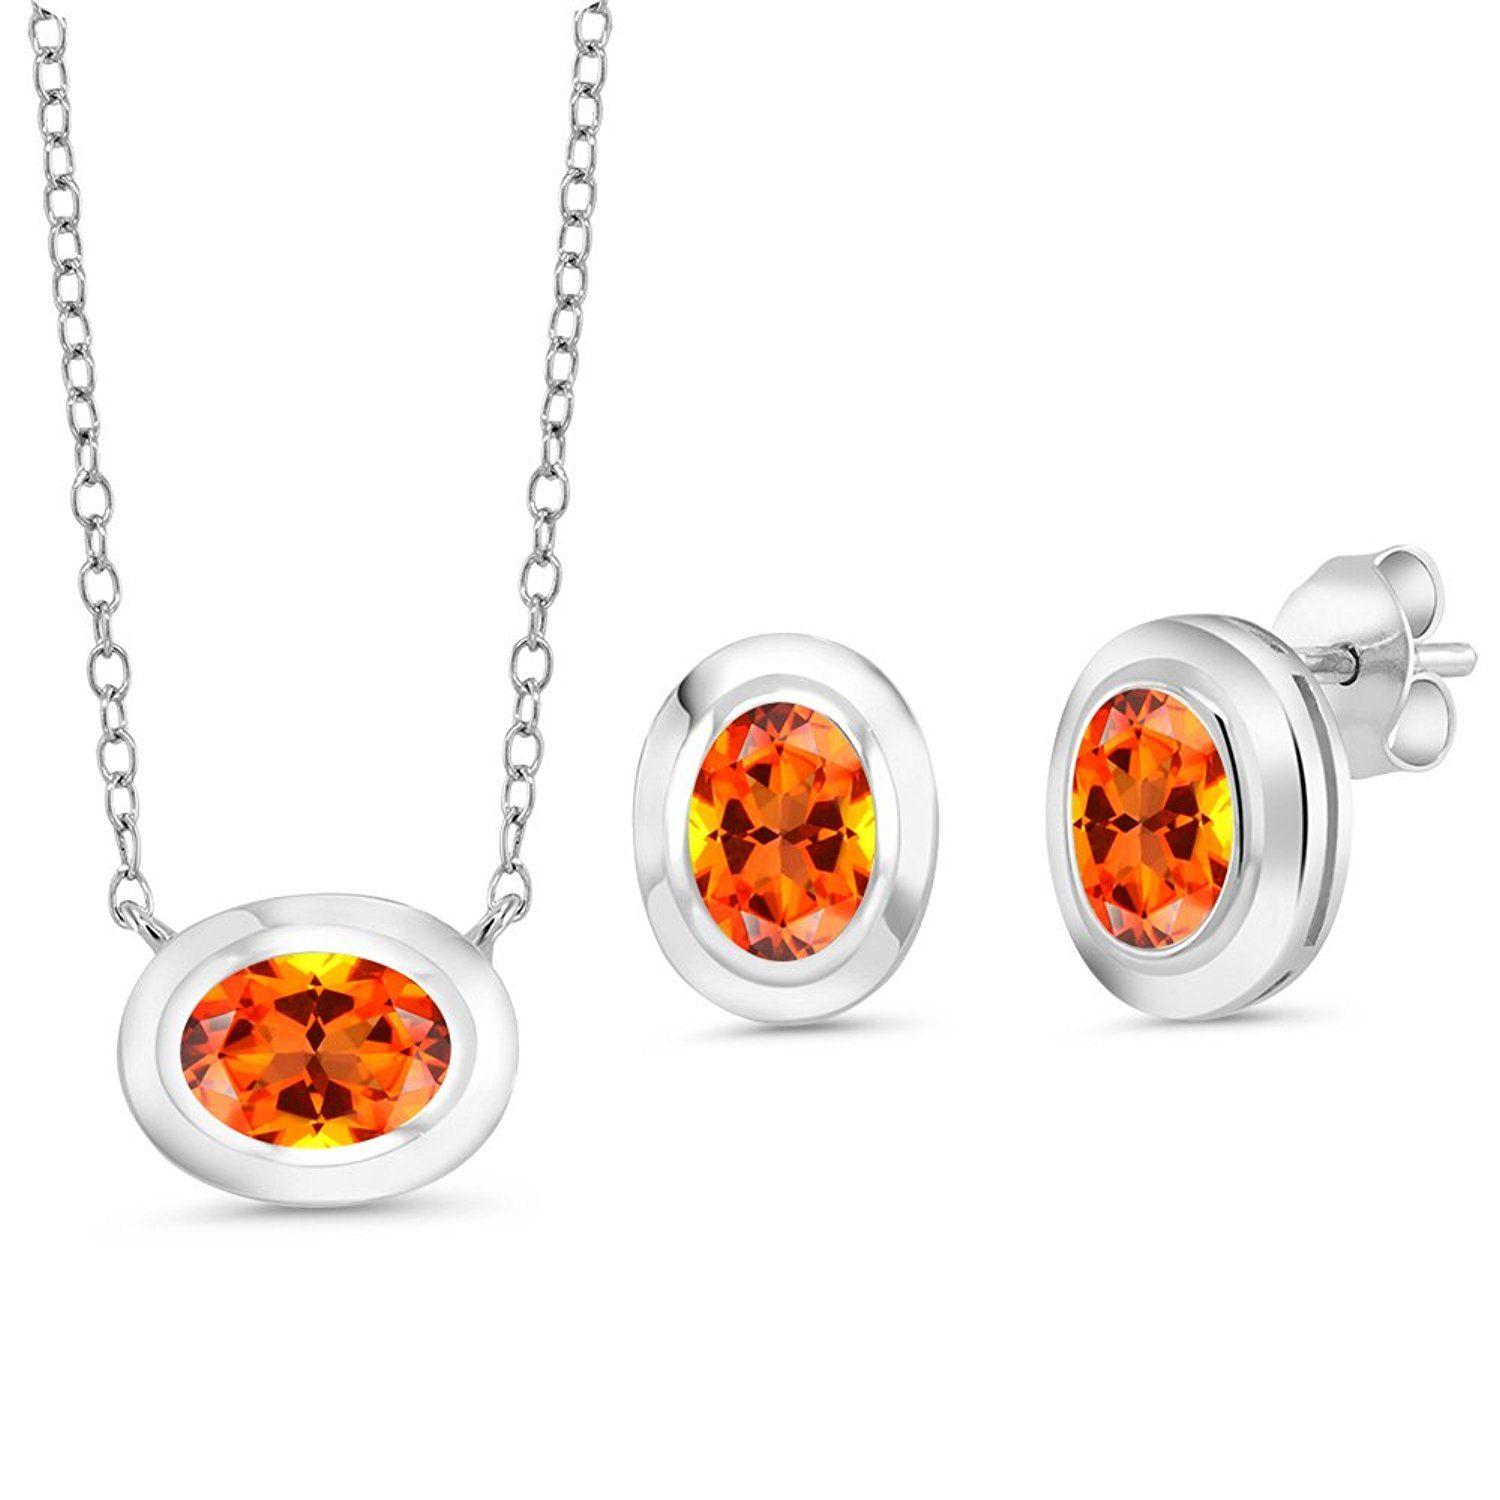 silver pendant earrings set set with oval poppy topaz from